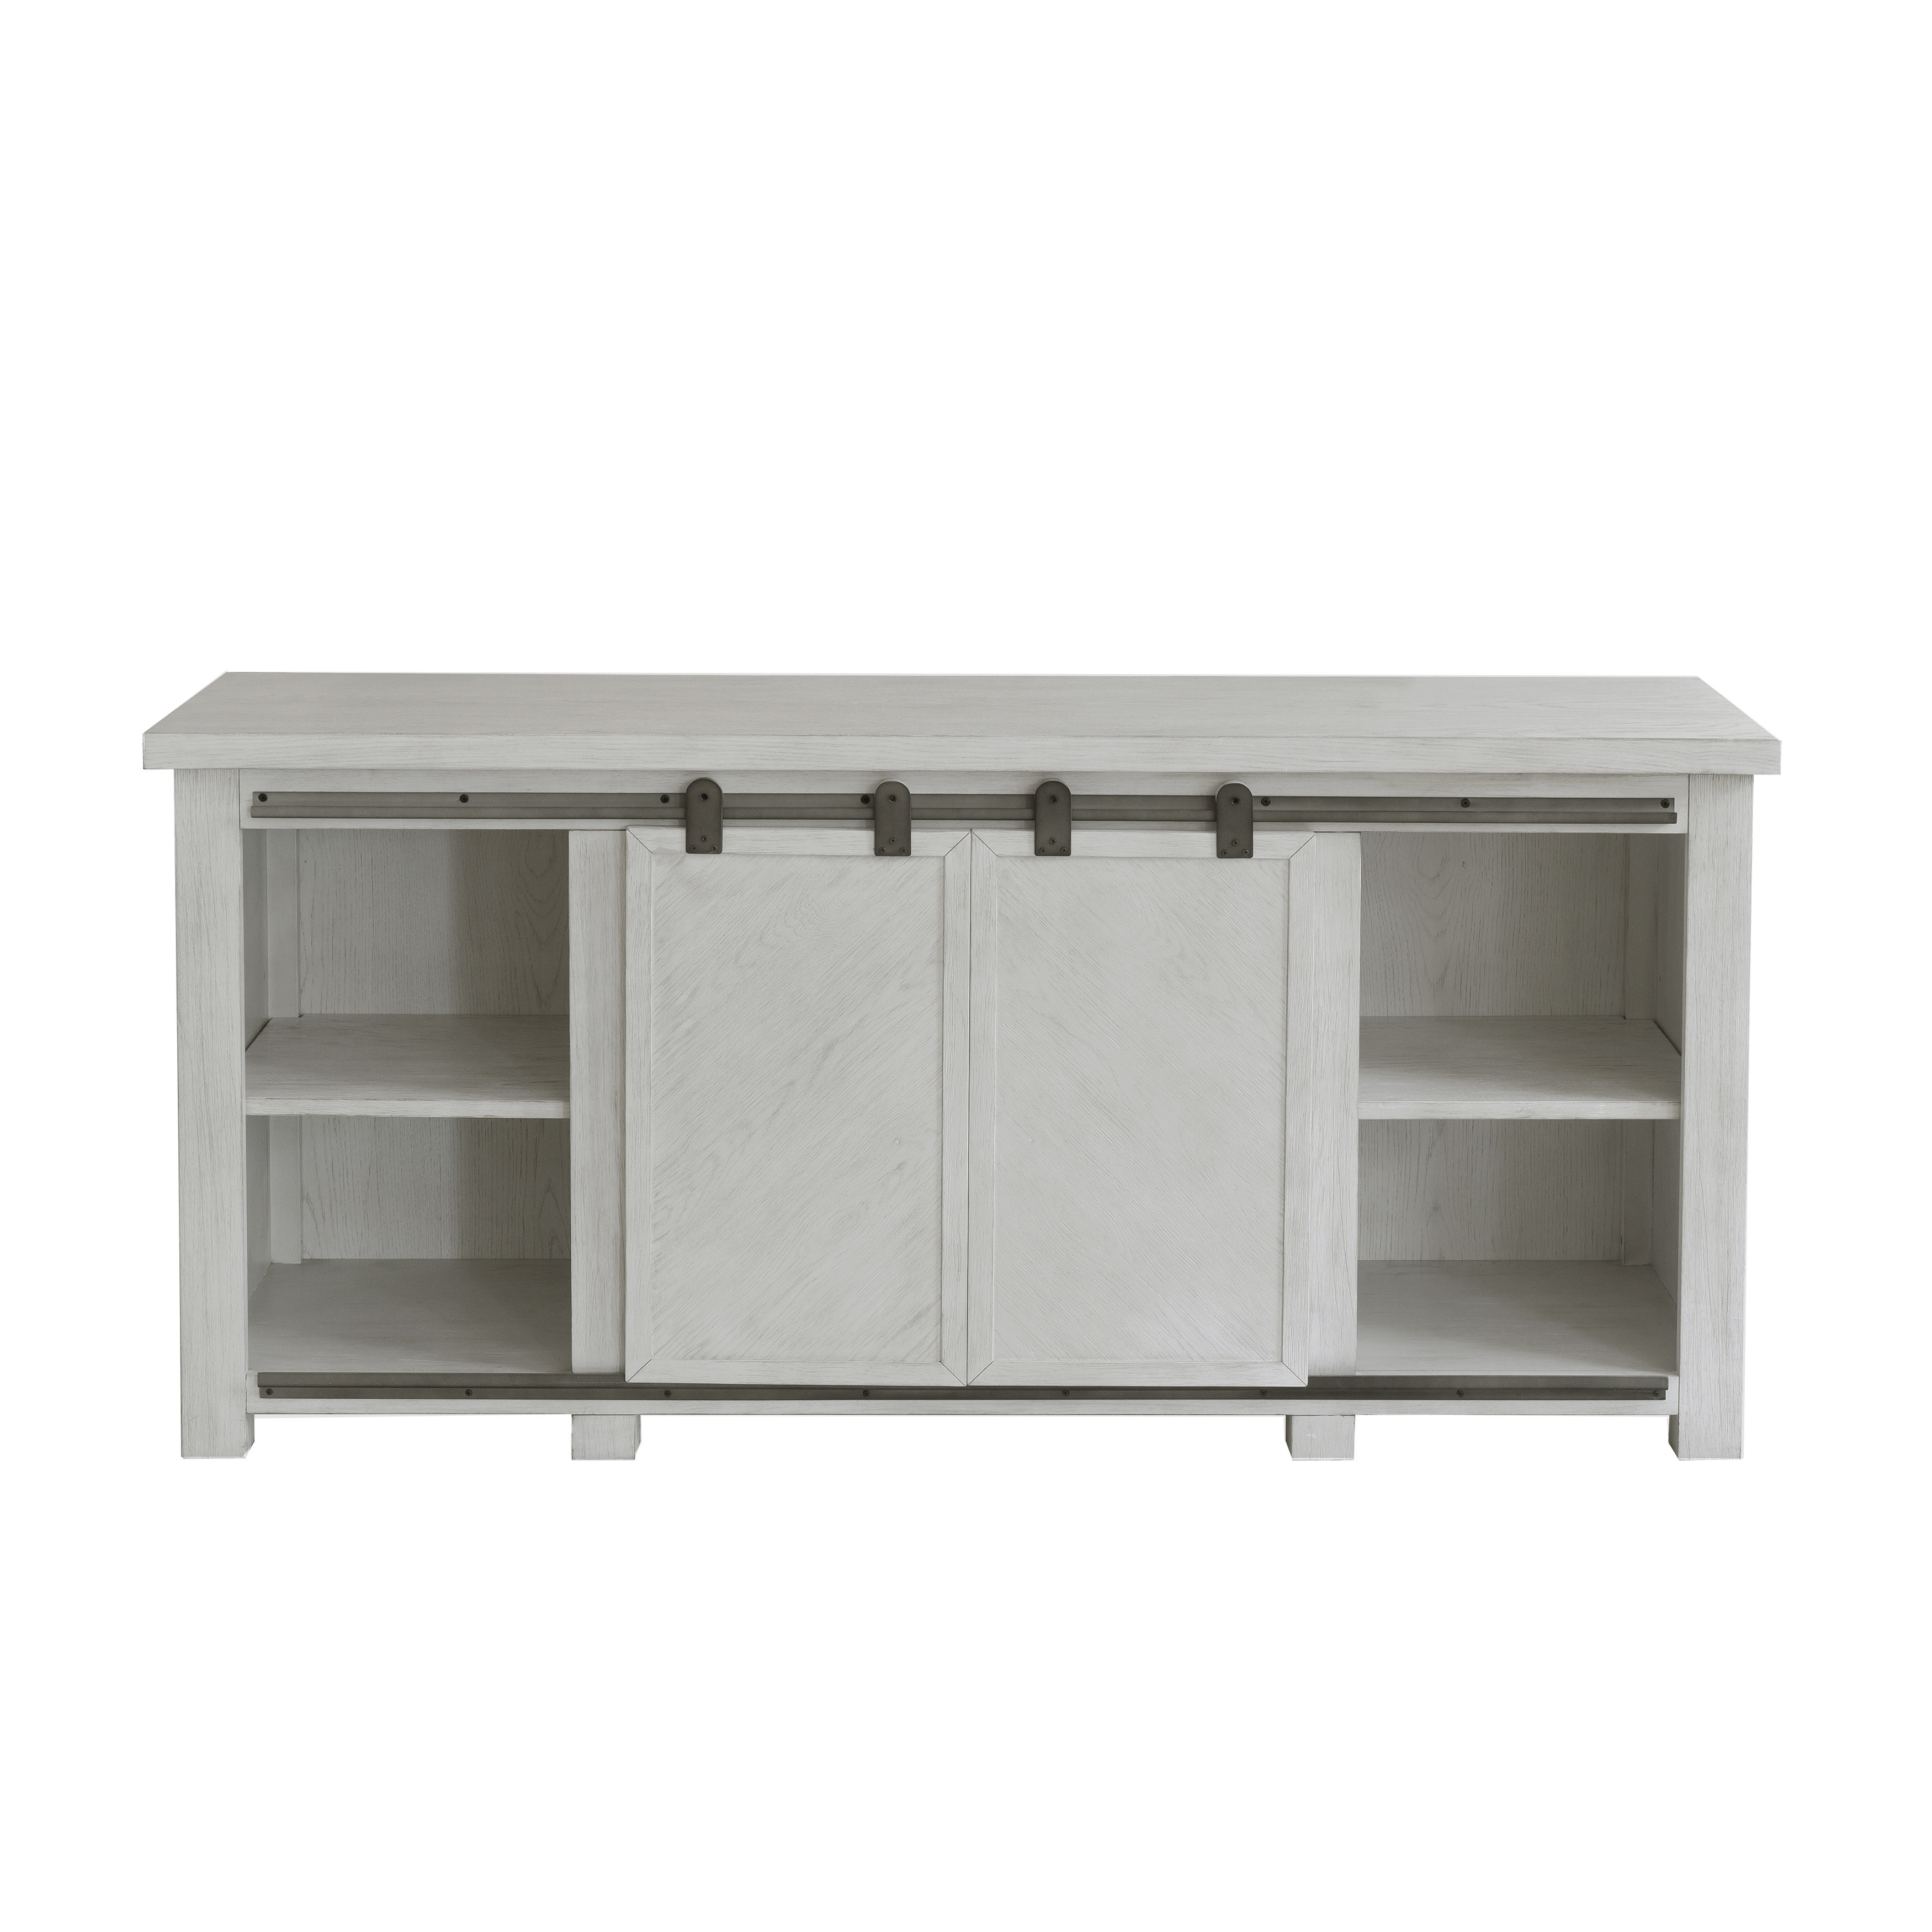 Cazenovia Charnley Sideboards With Preferred Highline Credenza (View 6 of 20)